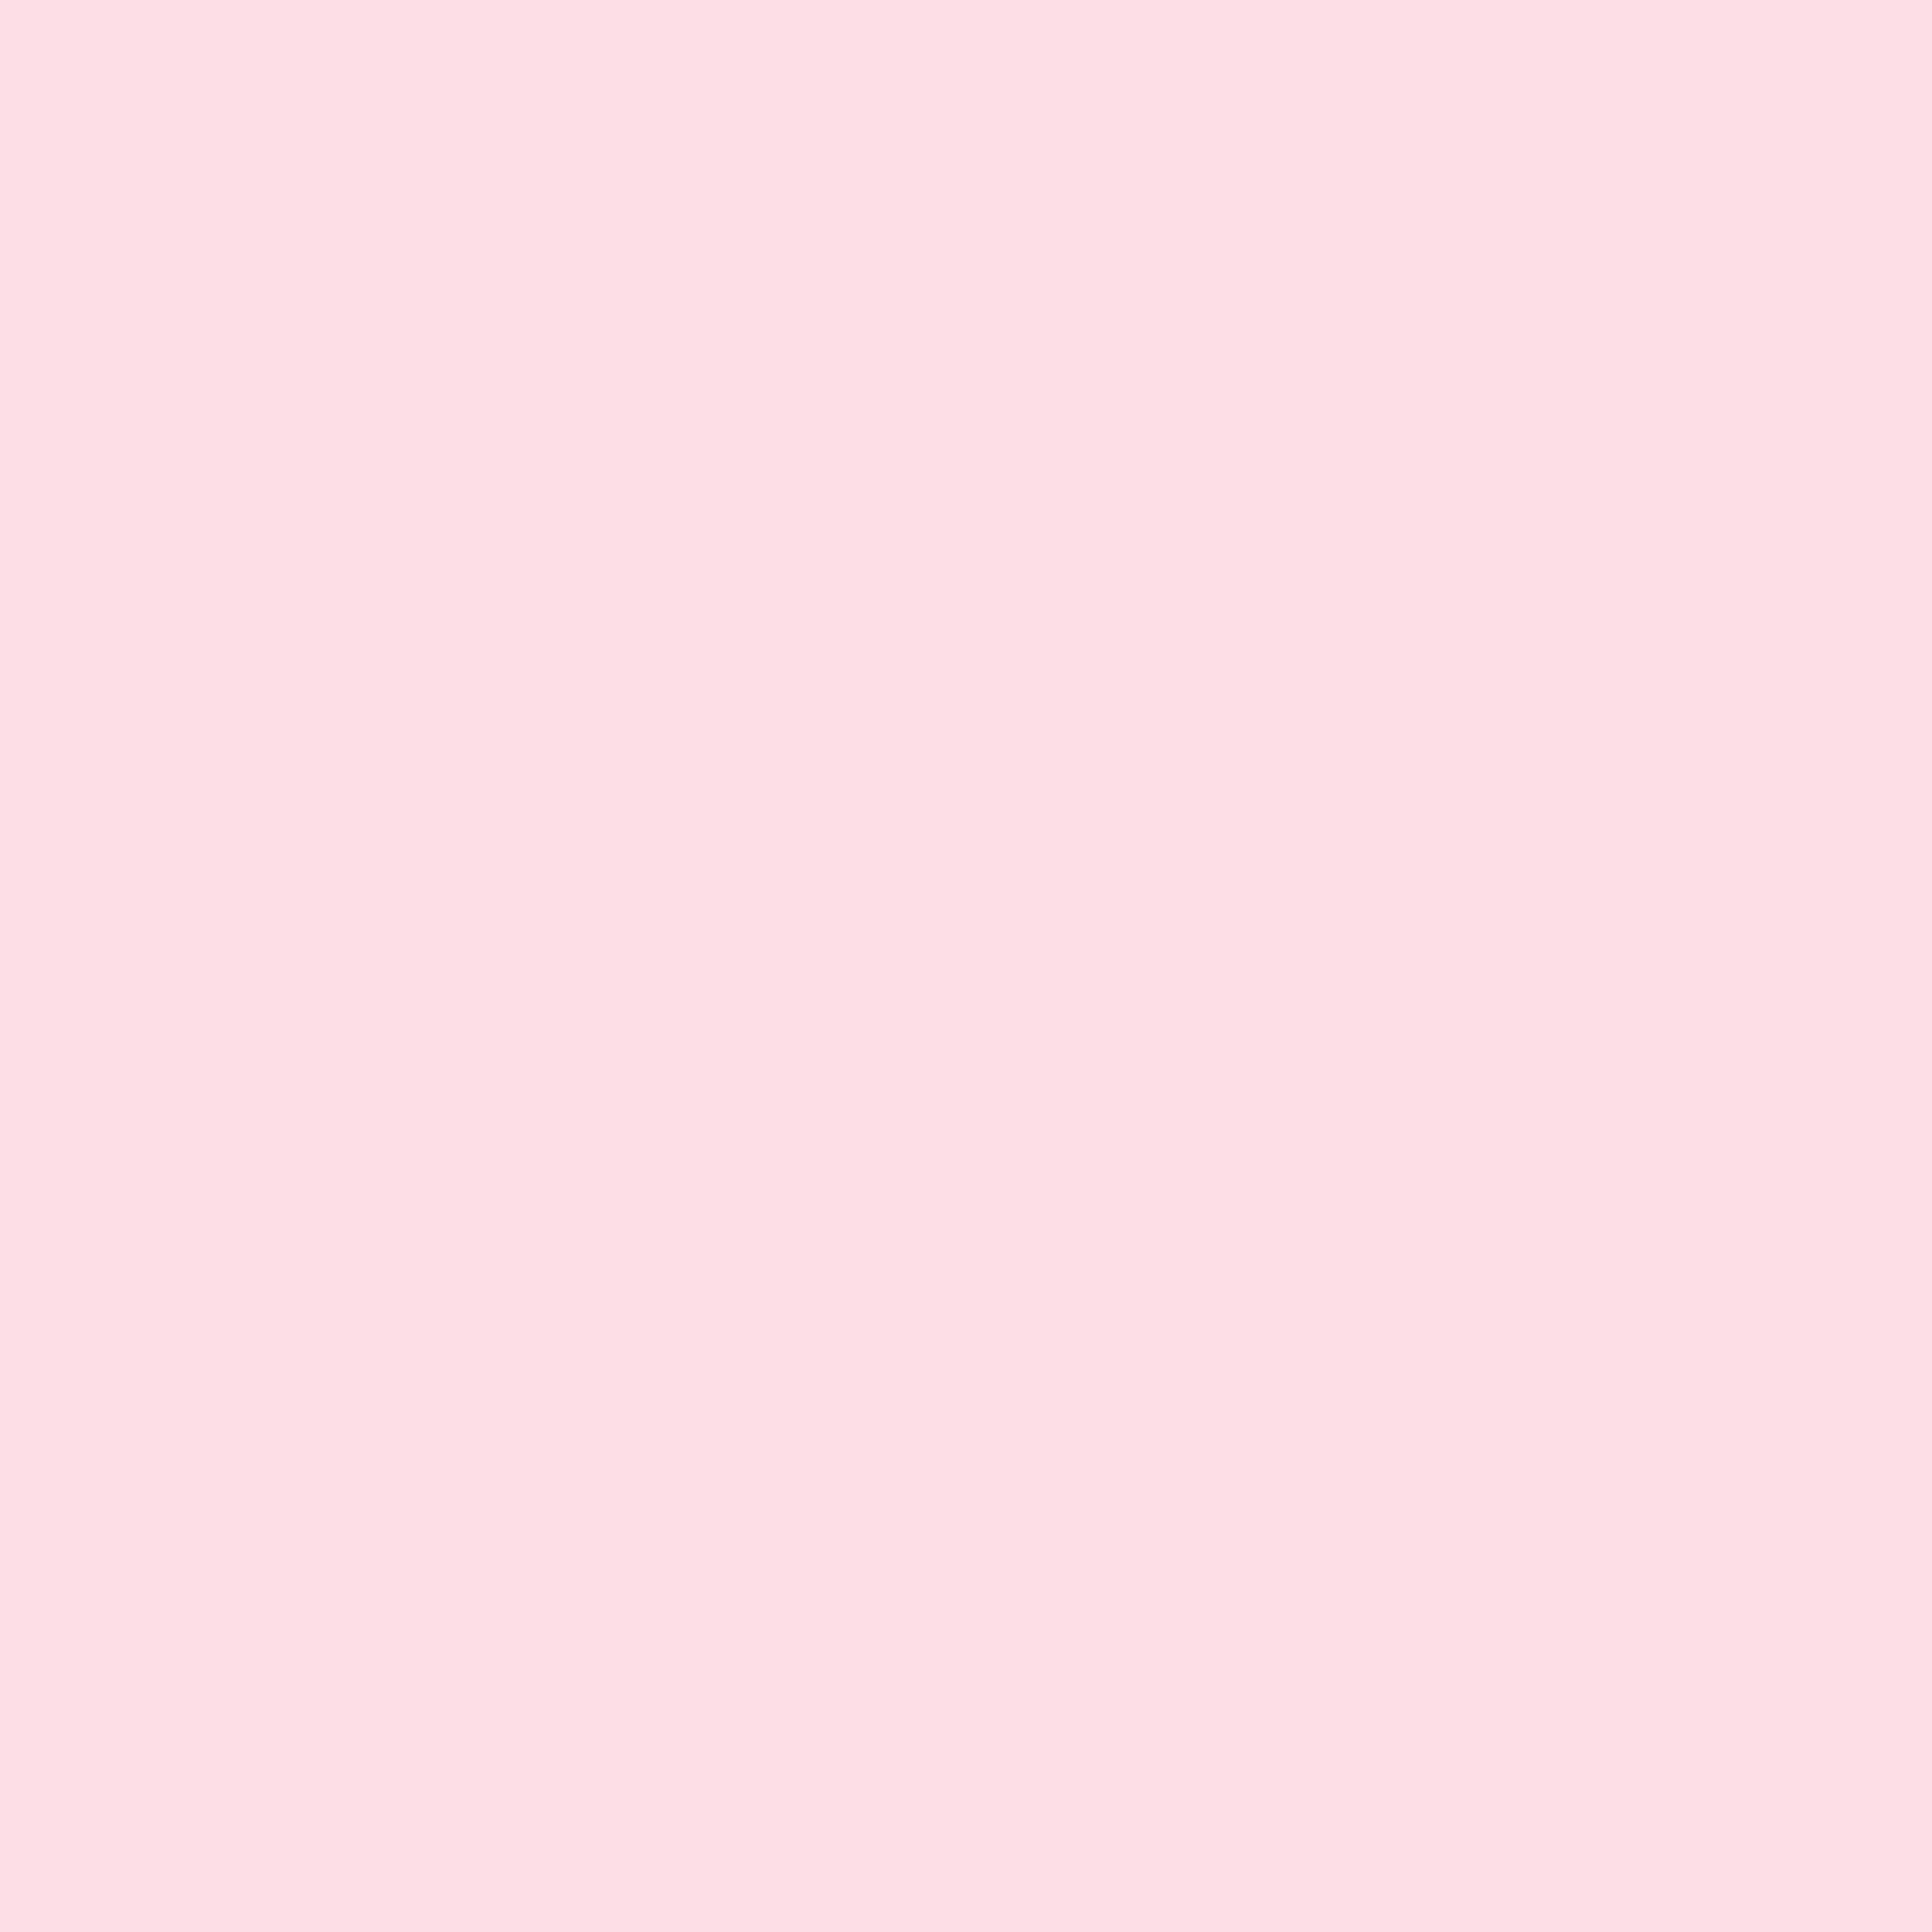 2732x2732 Piggy Pink Solid Color Background